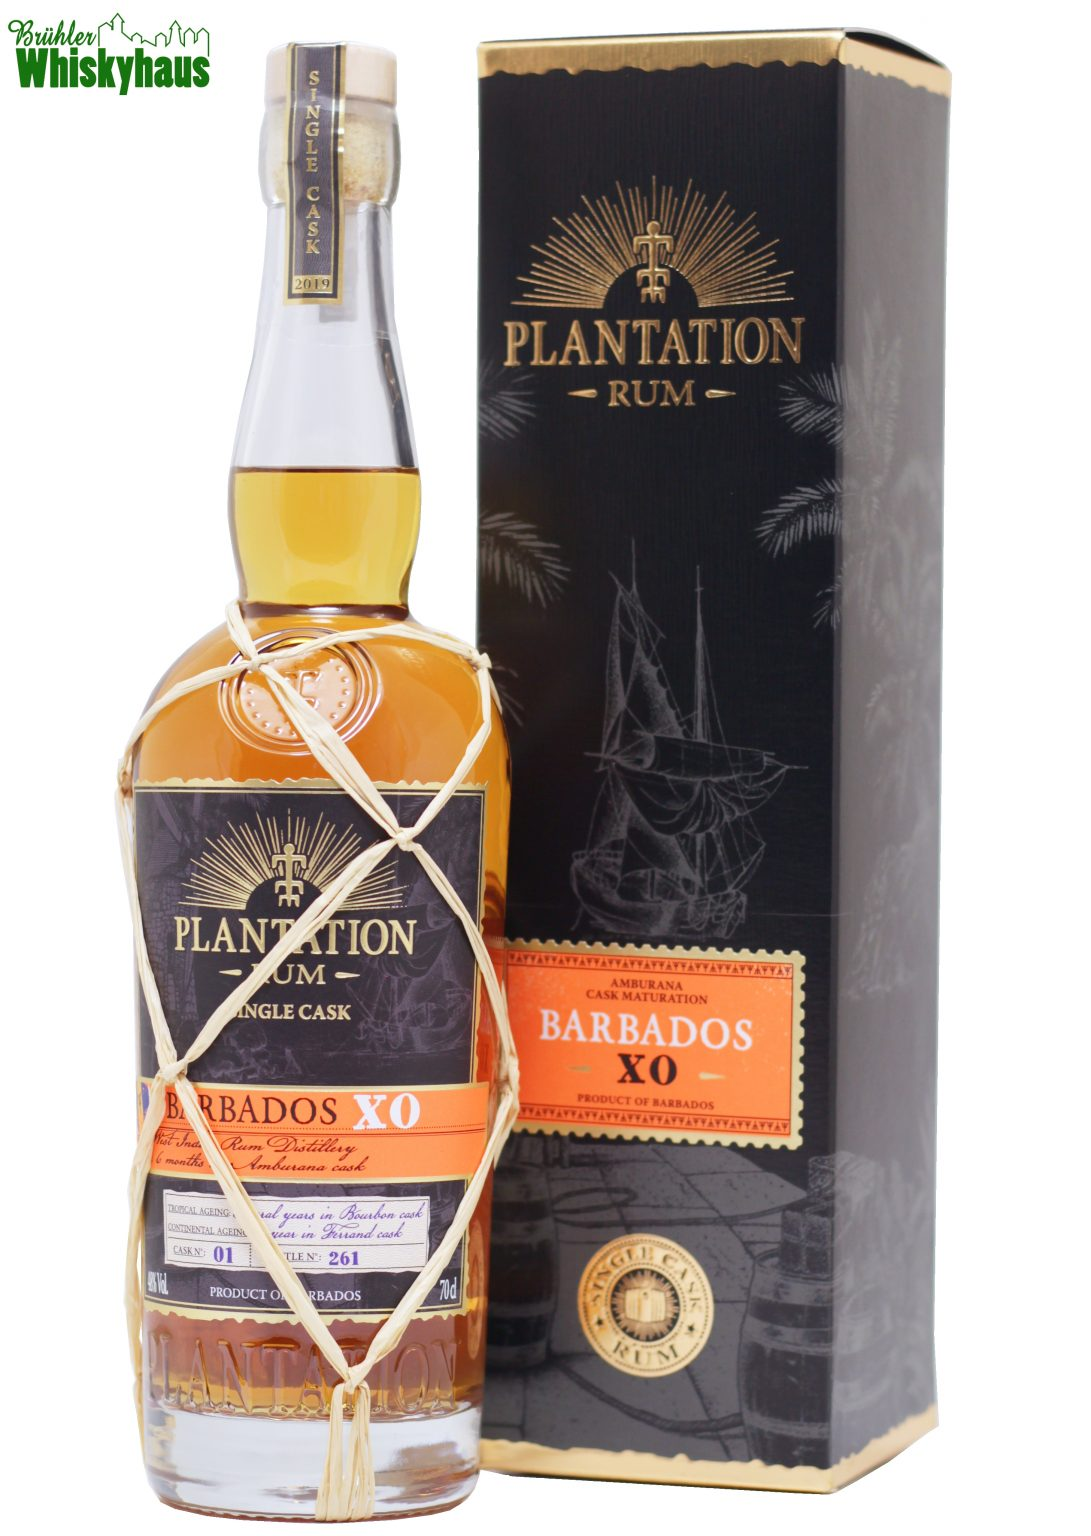 Barbados XO - Cask No. 01 - Amburana Cask Finish - Plantation Single Cask Rum